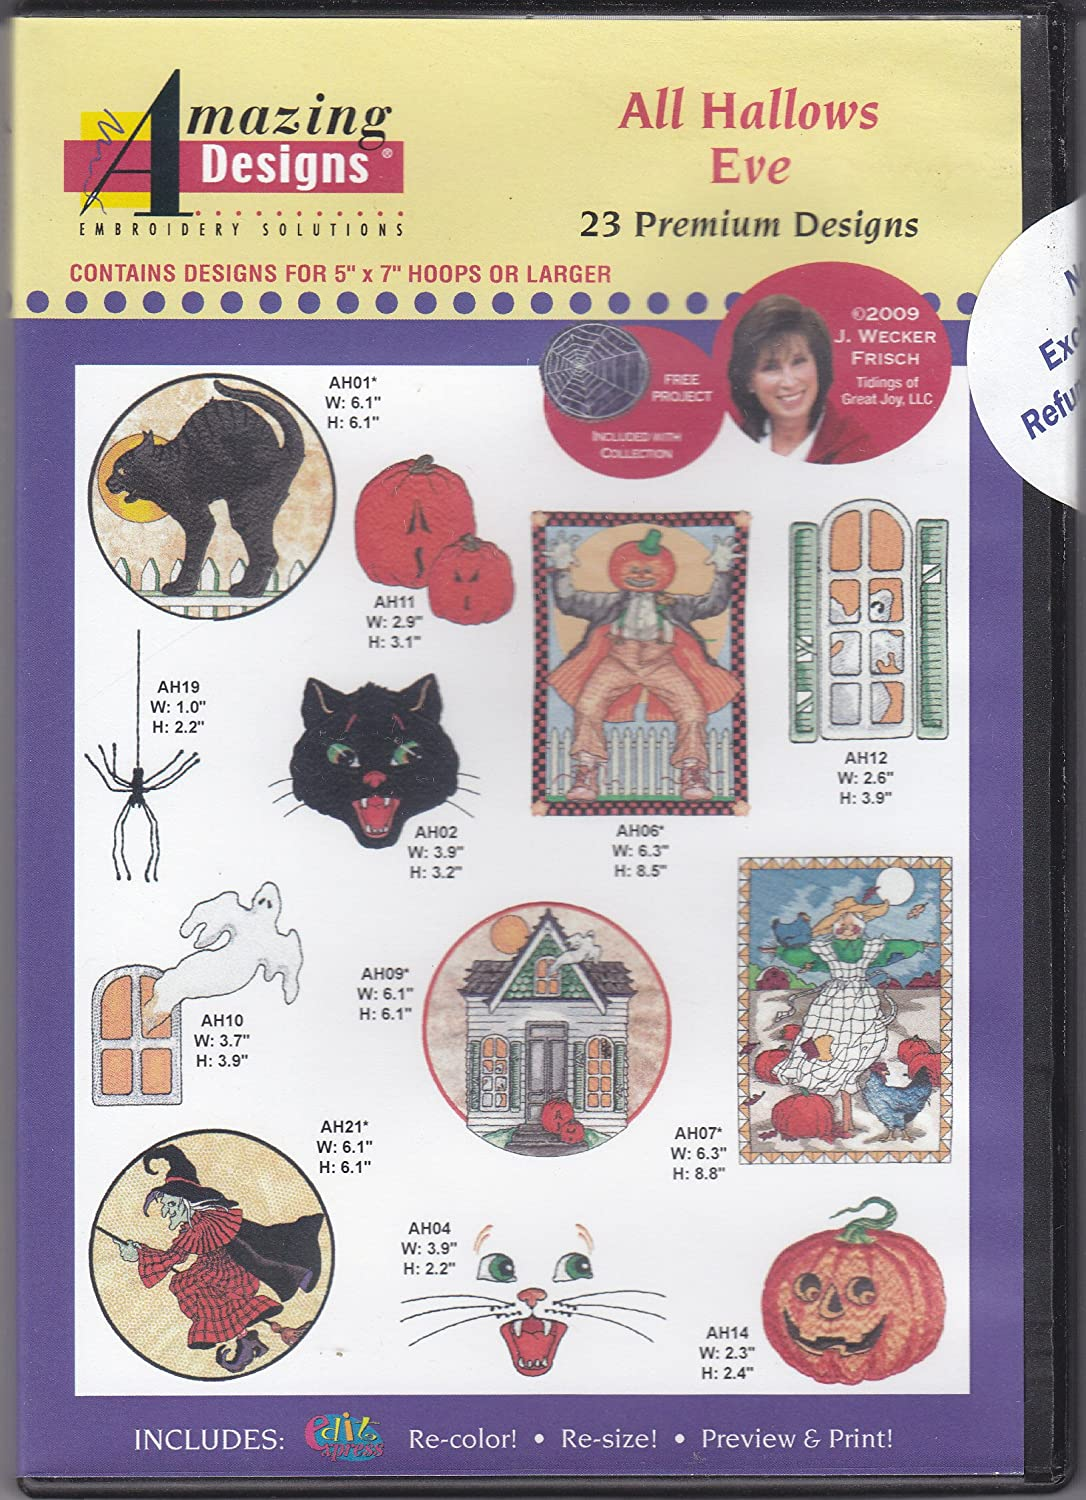 Amazing Designs All Hallows Eve Machine Embroidery Designs